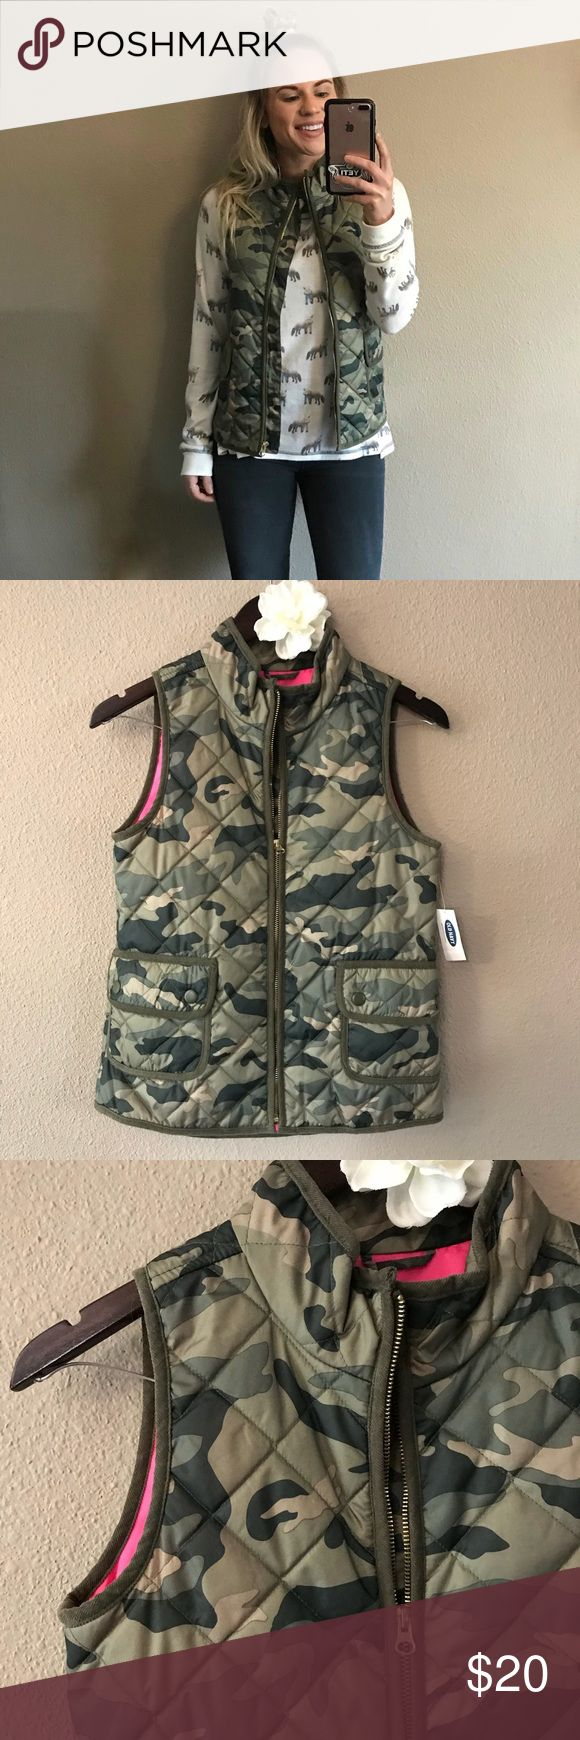 NWT Girls Old Navy Camouflage Puffer Vest New with tags. Old Navy KIDS (Girl) size XL (14). Camouflage puffer vest with pink lining. Two buttons on the front with 2 button snap closure. Gold zipper details. I'm typically an XS/S and purchased this for myself but never ended up wearing it. Old Navy Jackets & Coats Vests